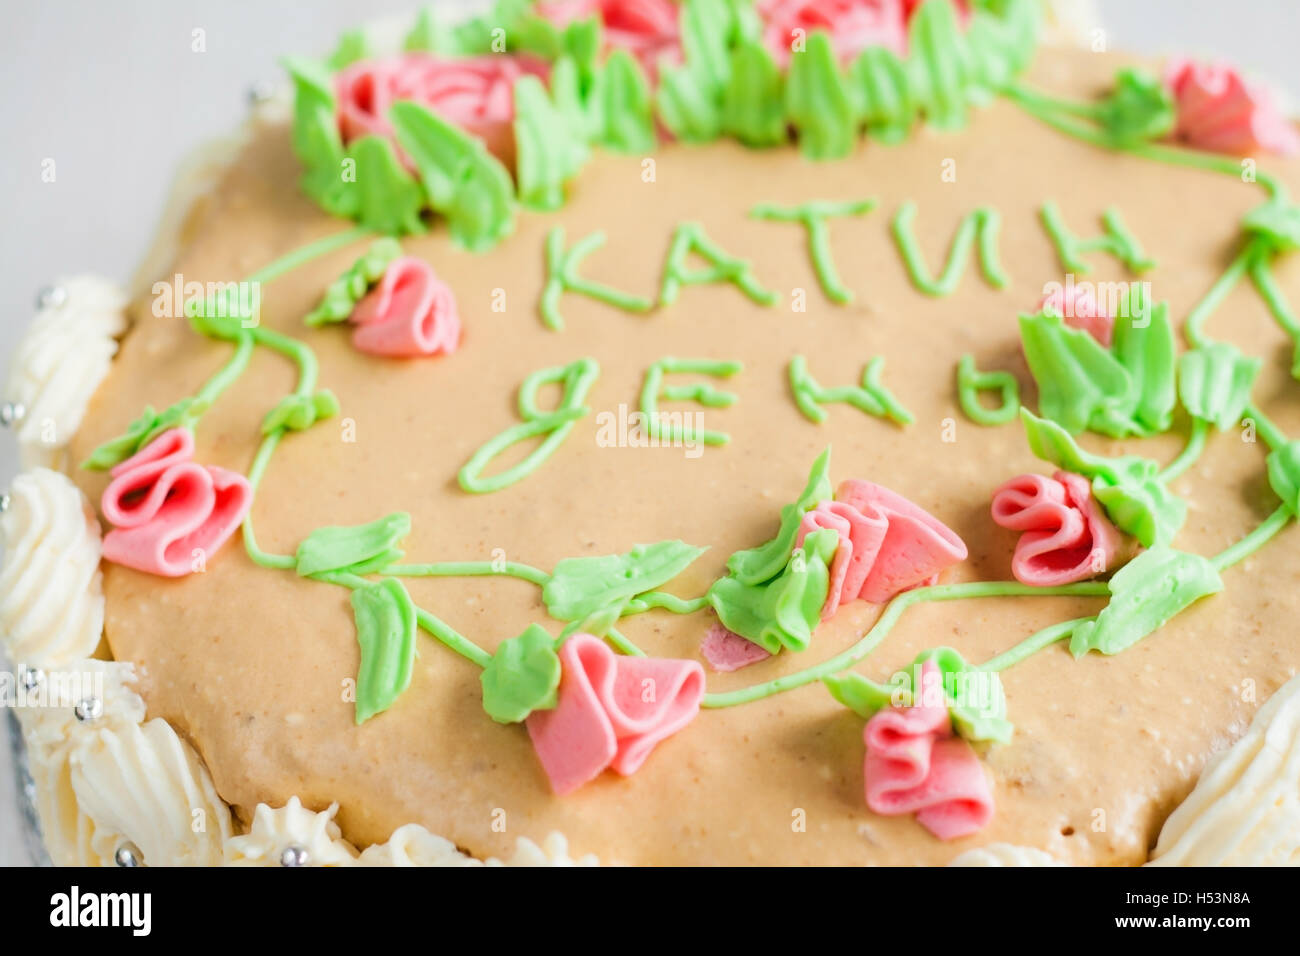 Cute Wedding Cake Green Leaves Stock Photos & Cute Wedding Cake ...